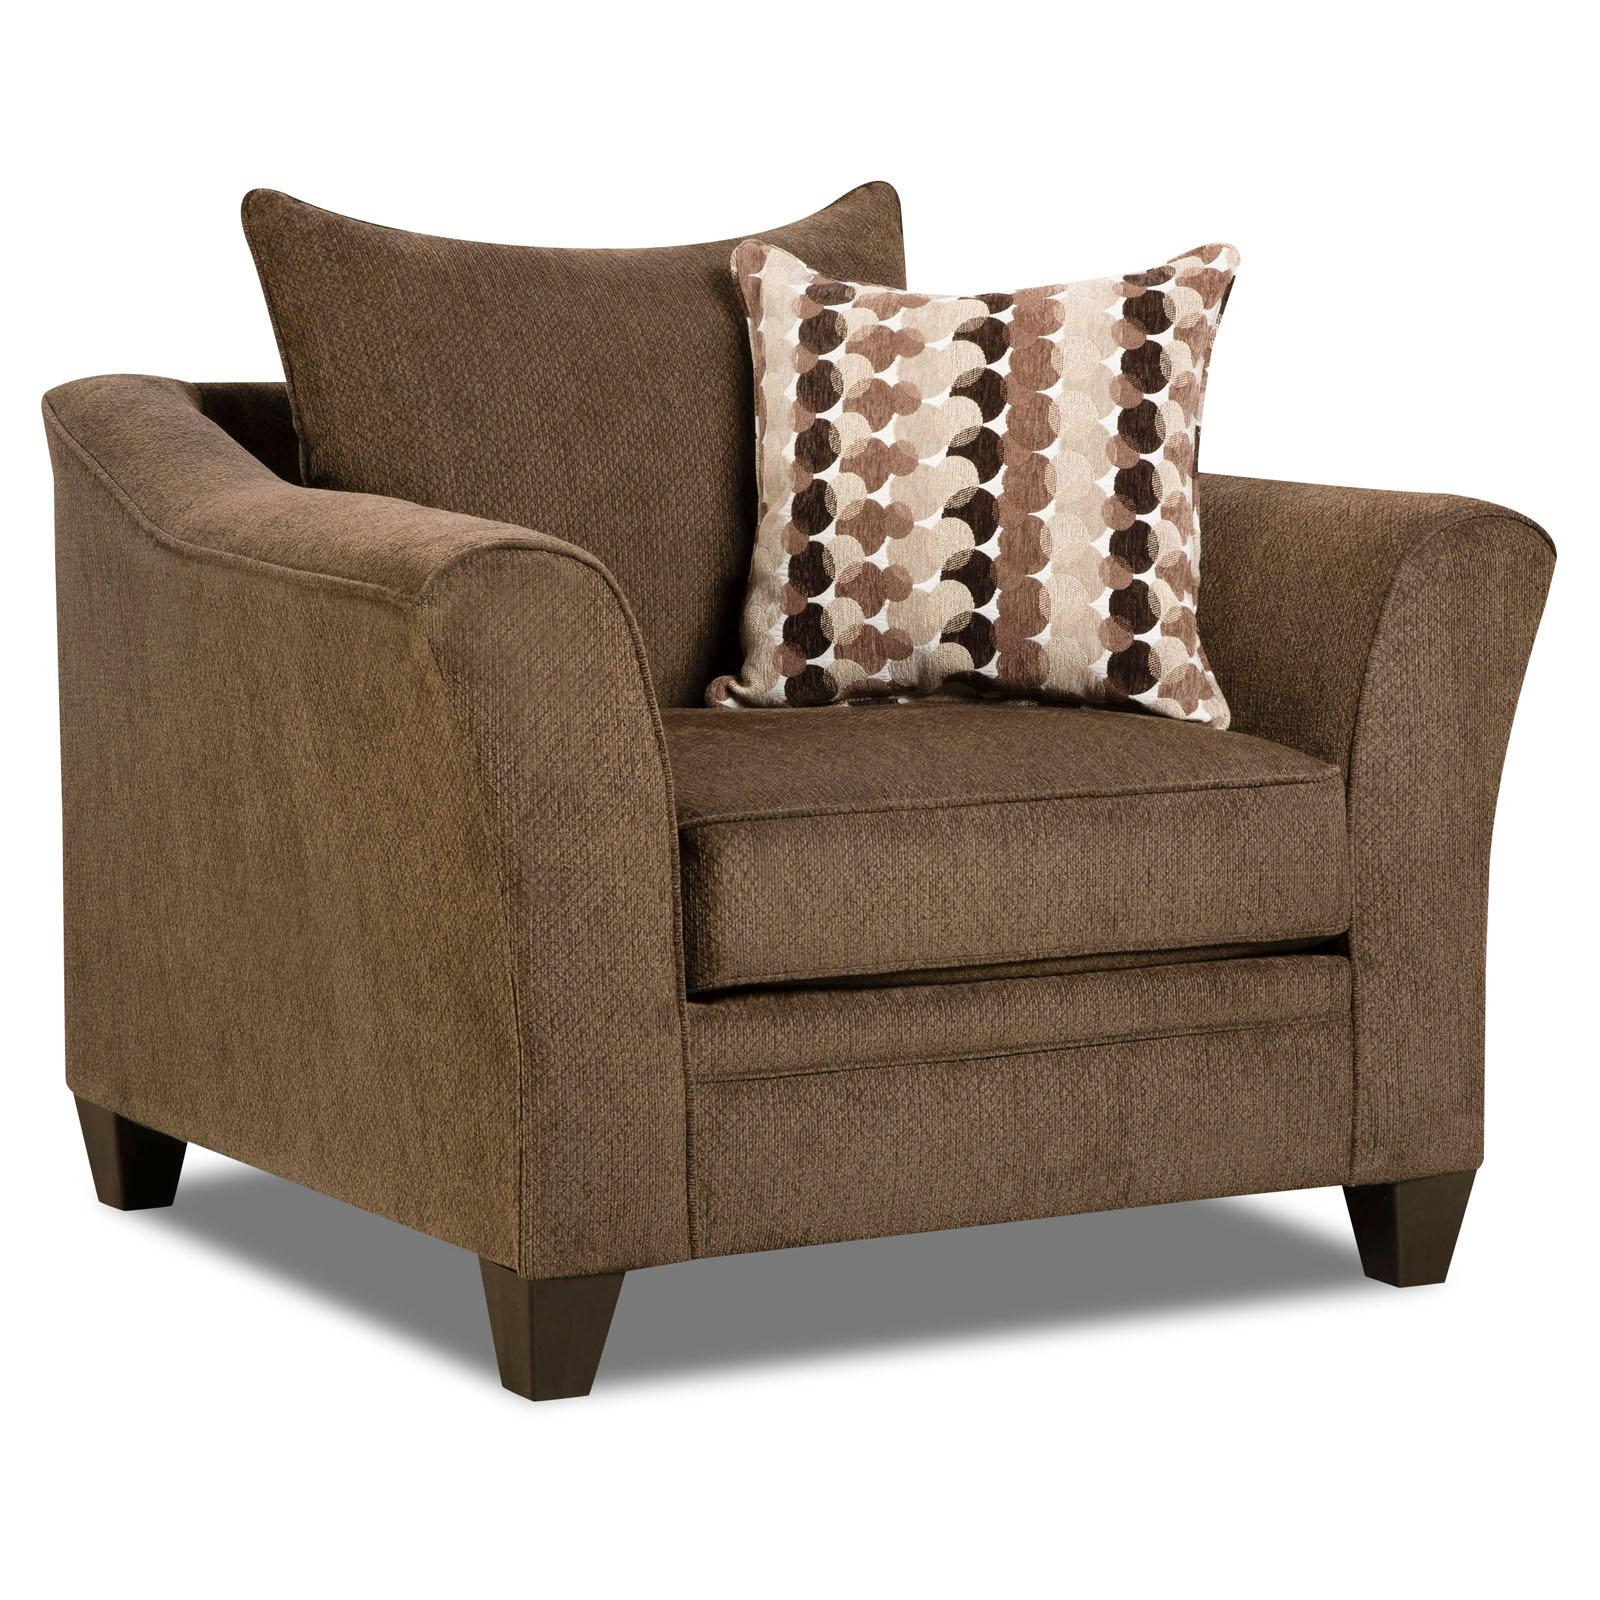 Simmons Upholstery Albany Flared Arm Accent Chair Chestnut - 6485-01 ALBANY CHESTNUT